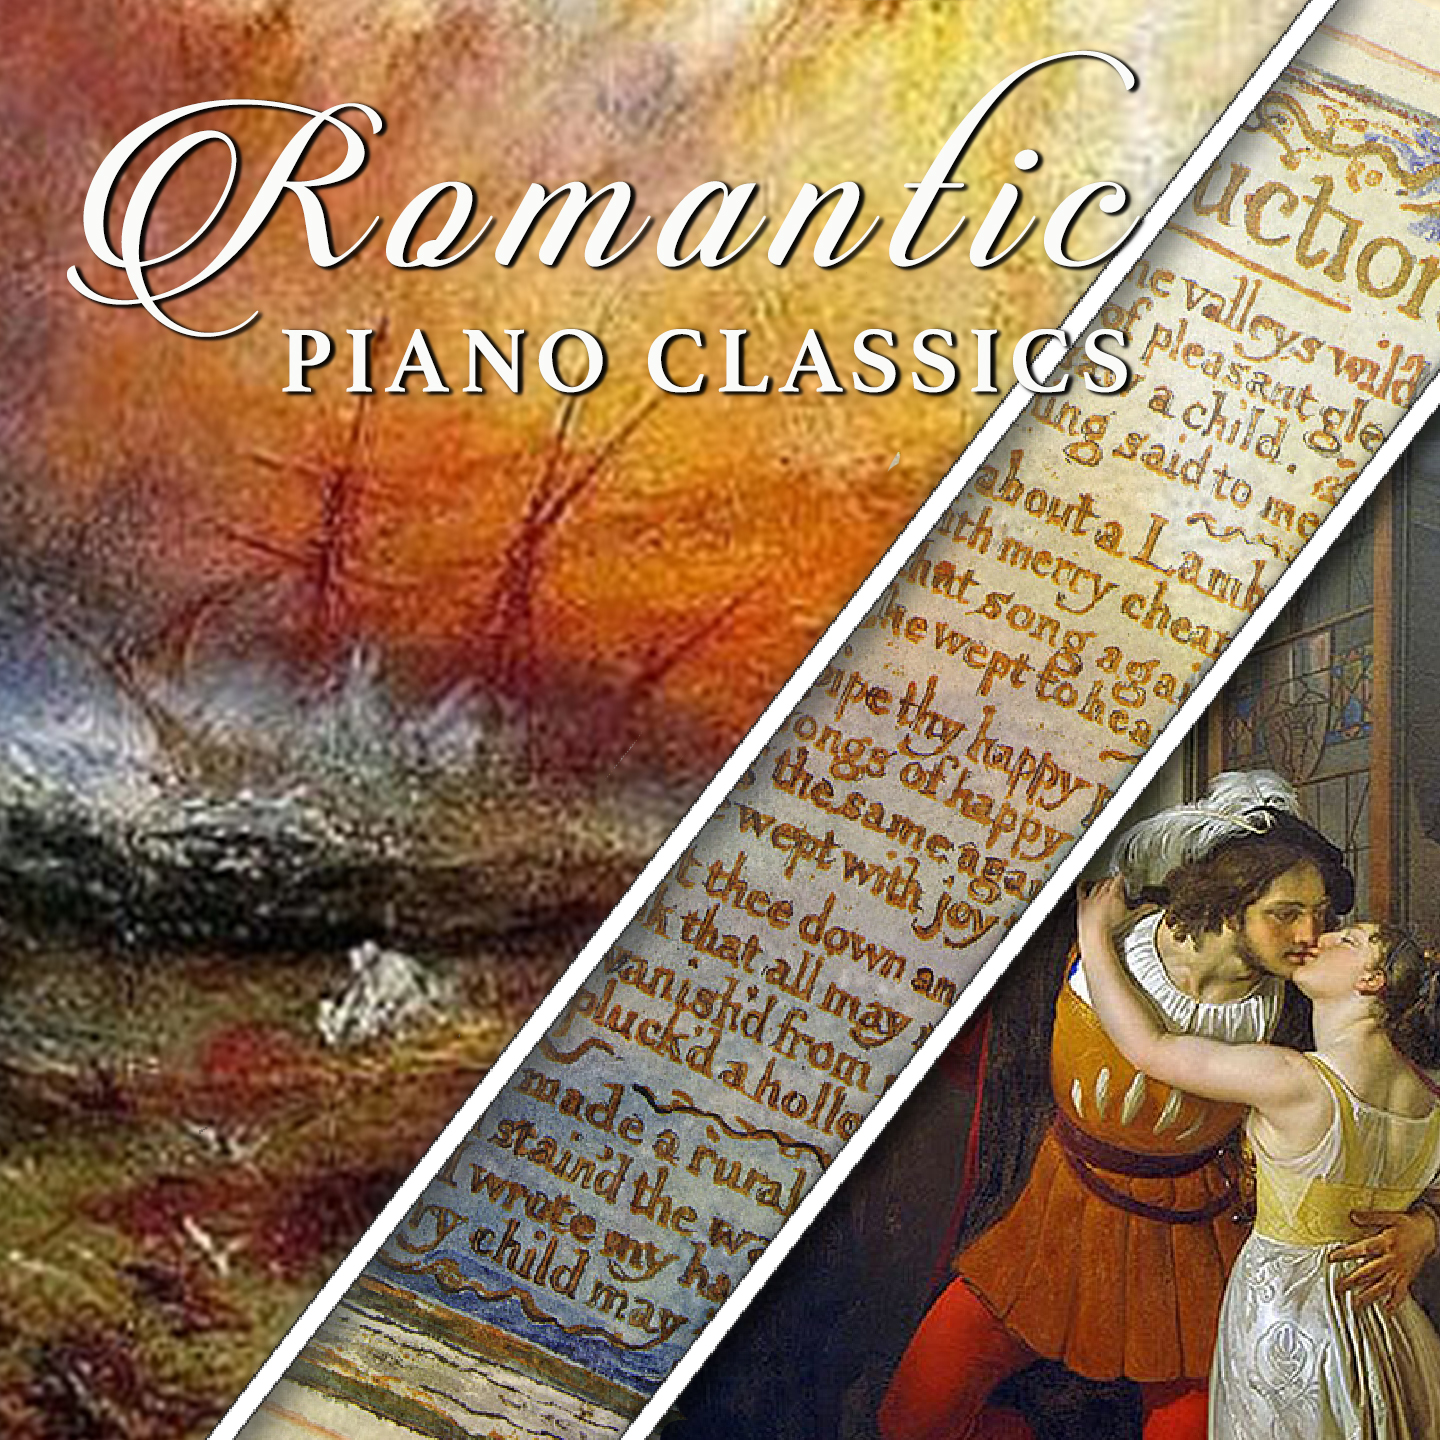 Piano Classics from the Romantic Era